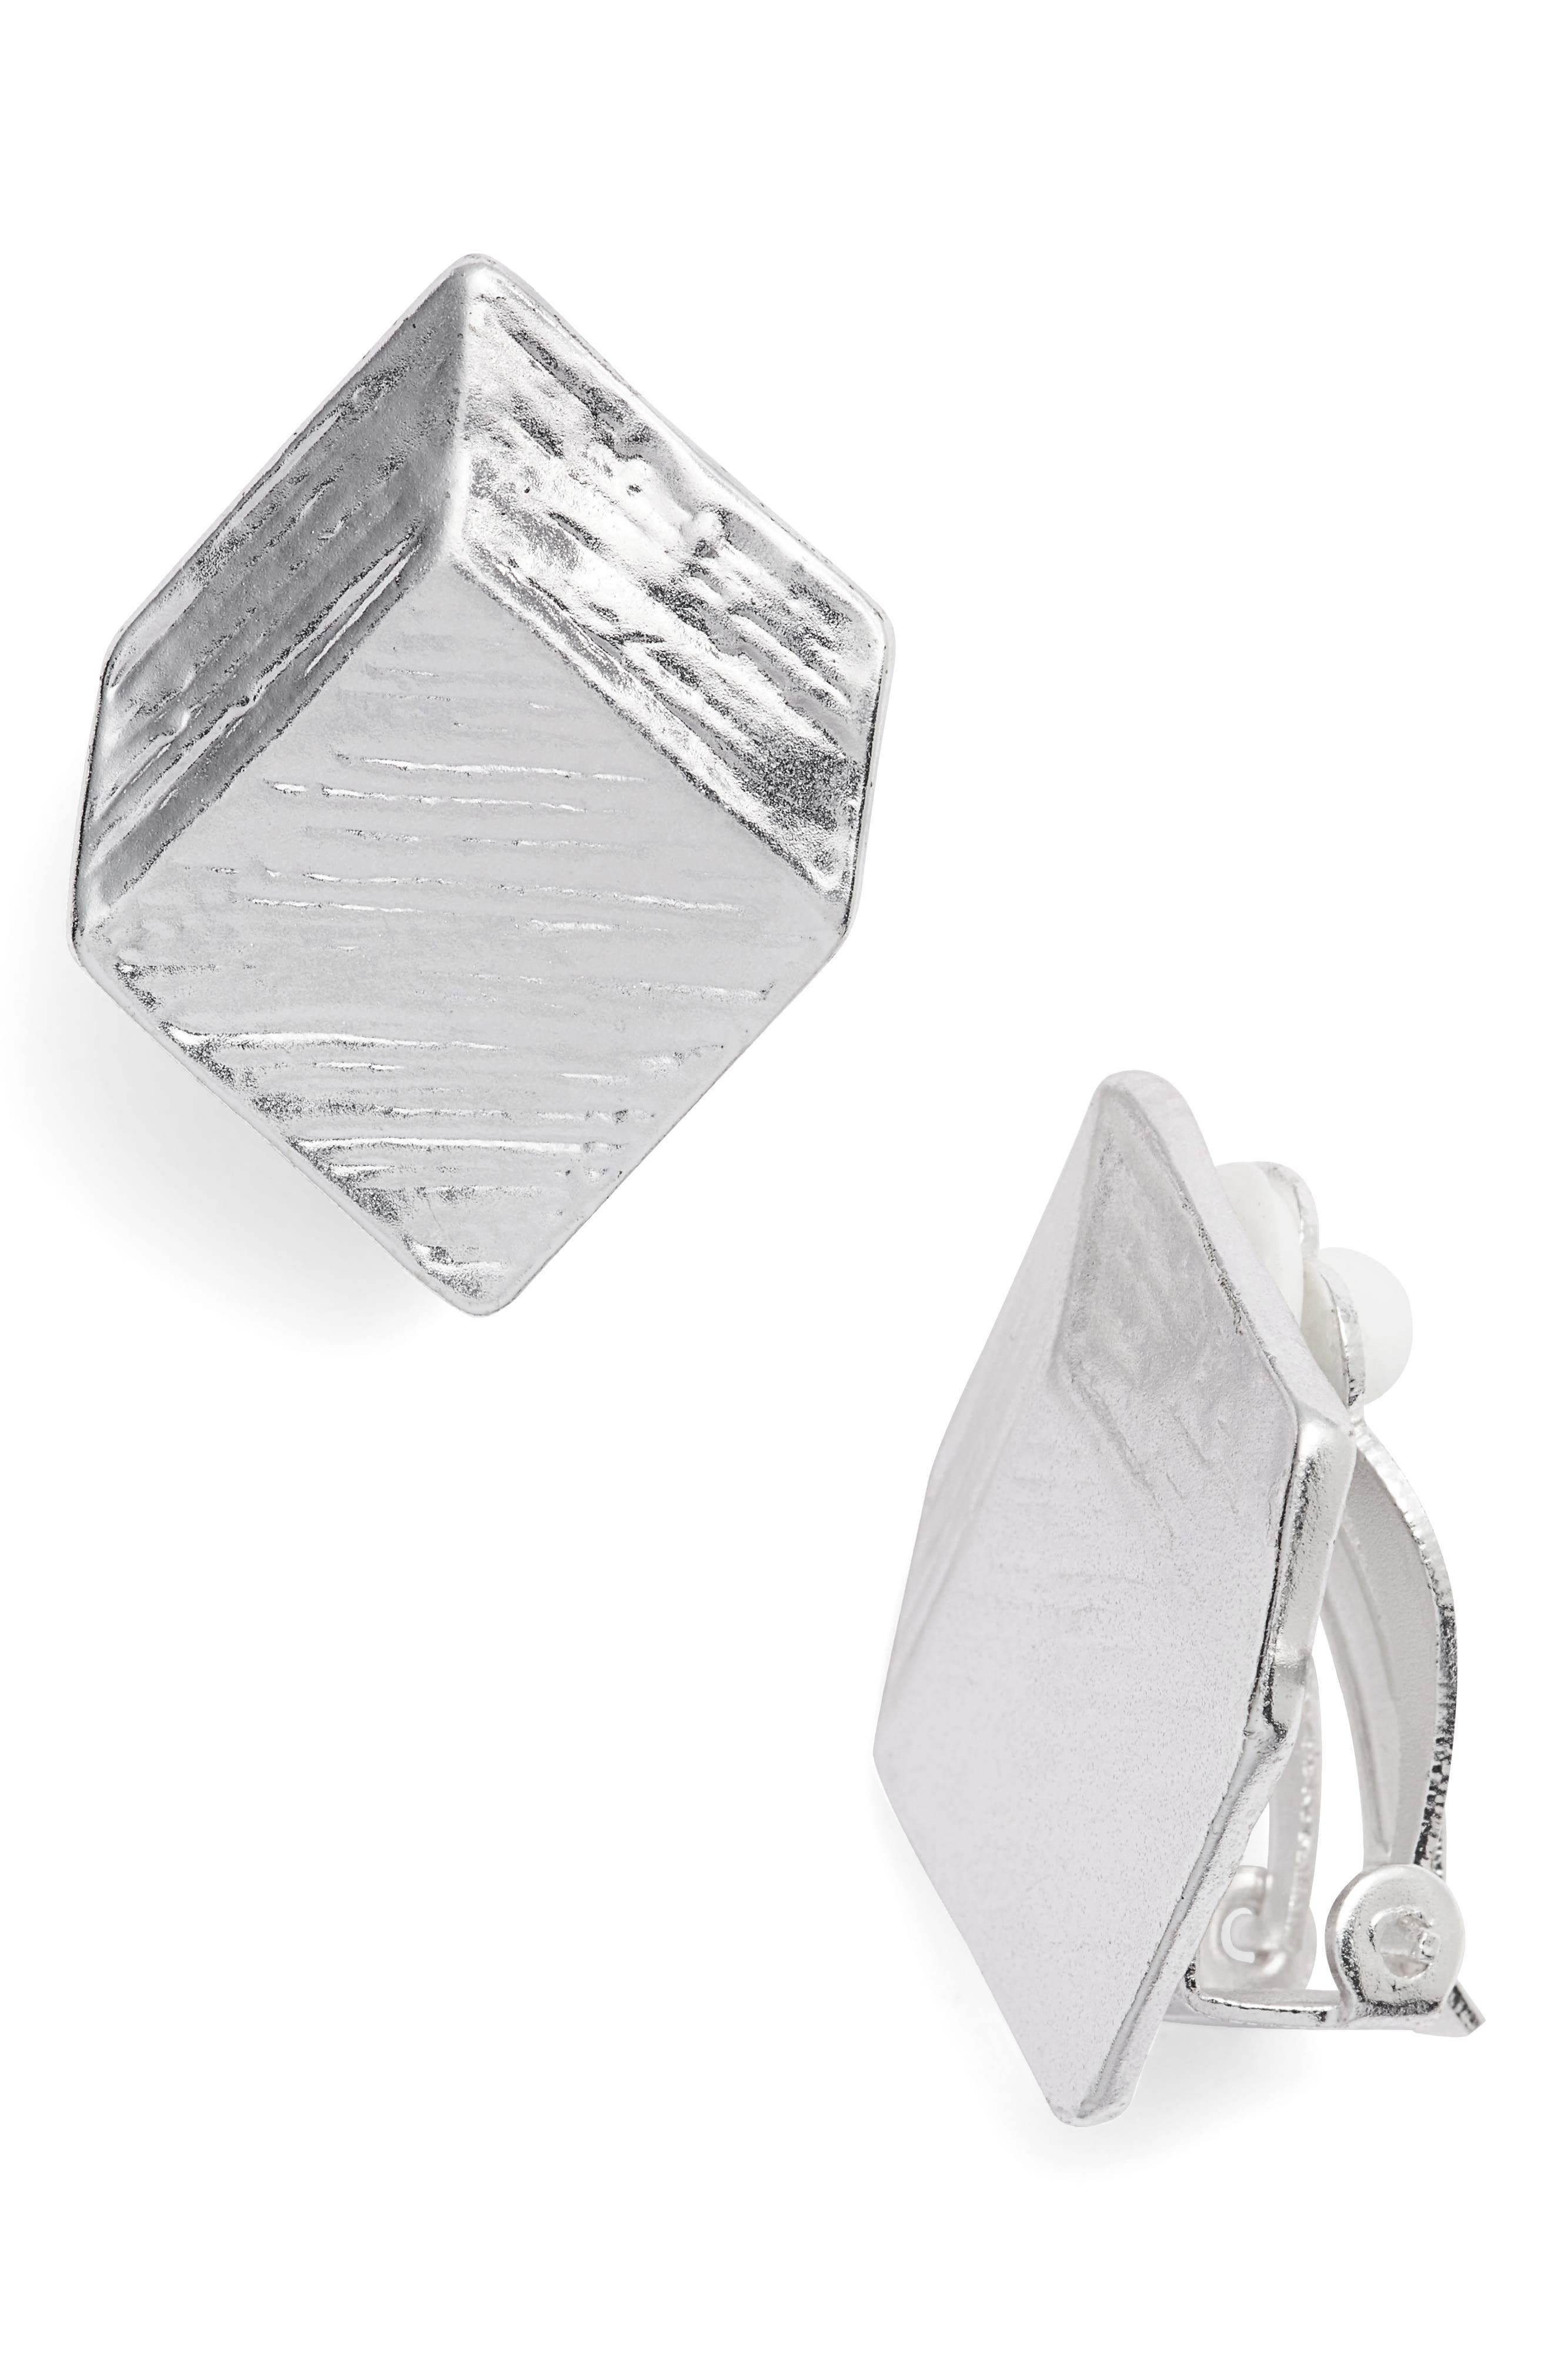 Karine Sultan Brushed Square Clip-On Earrings